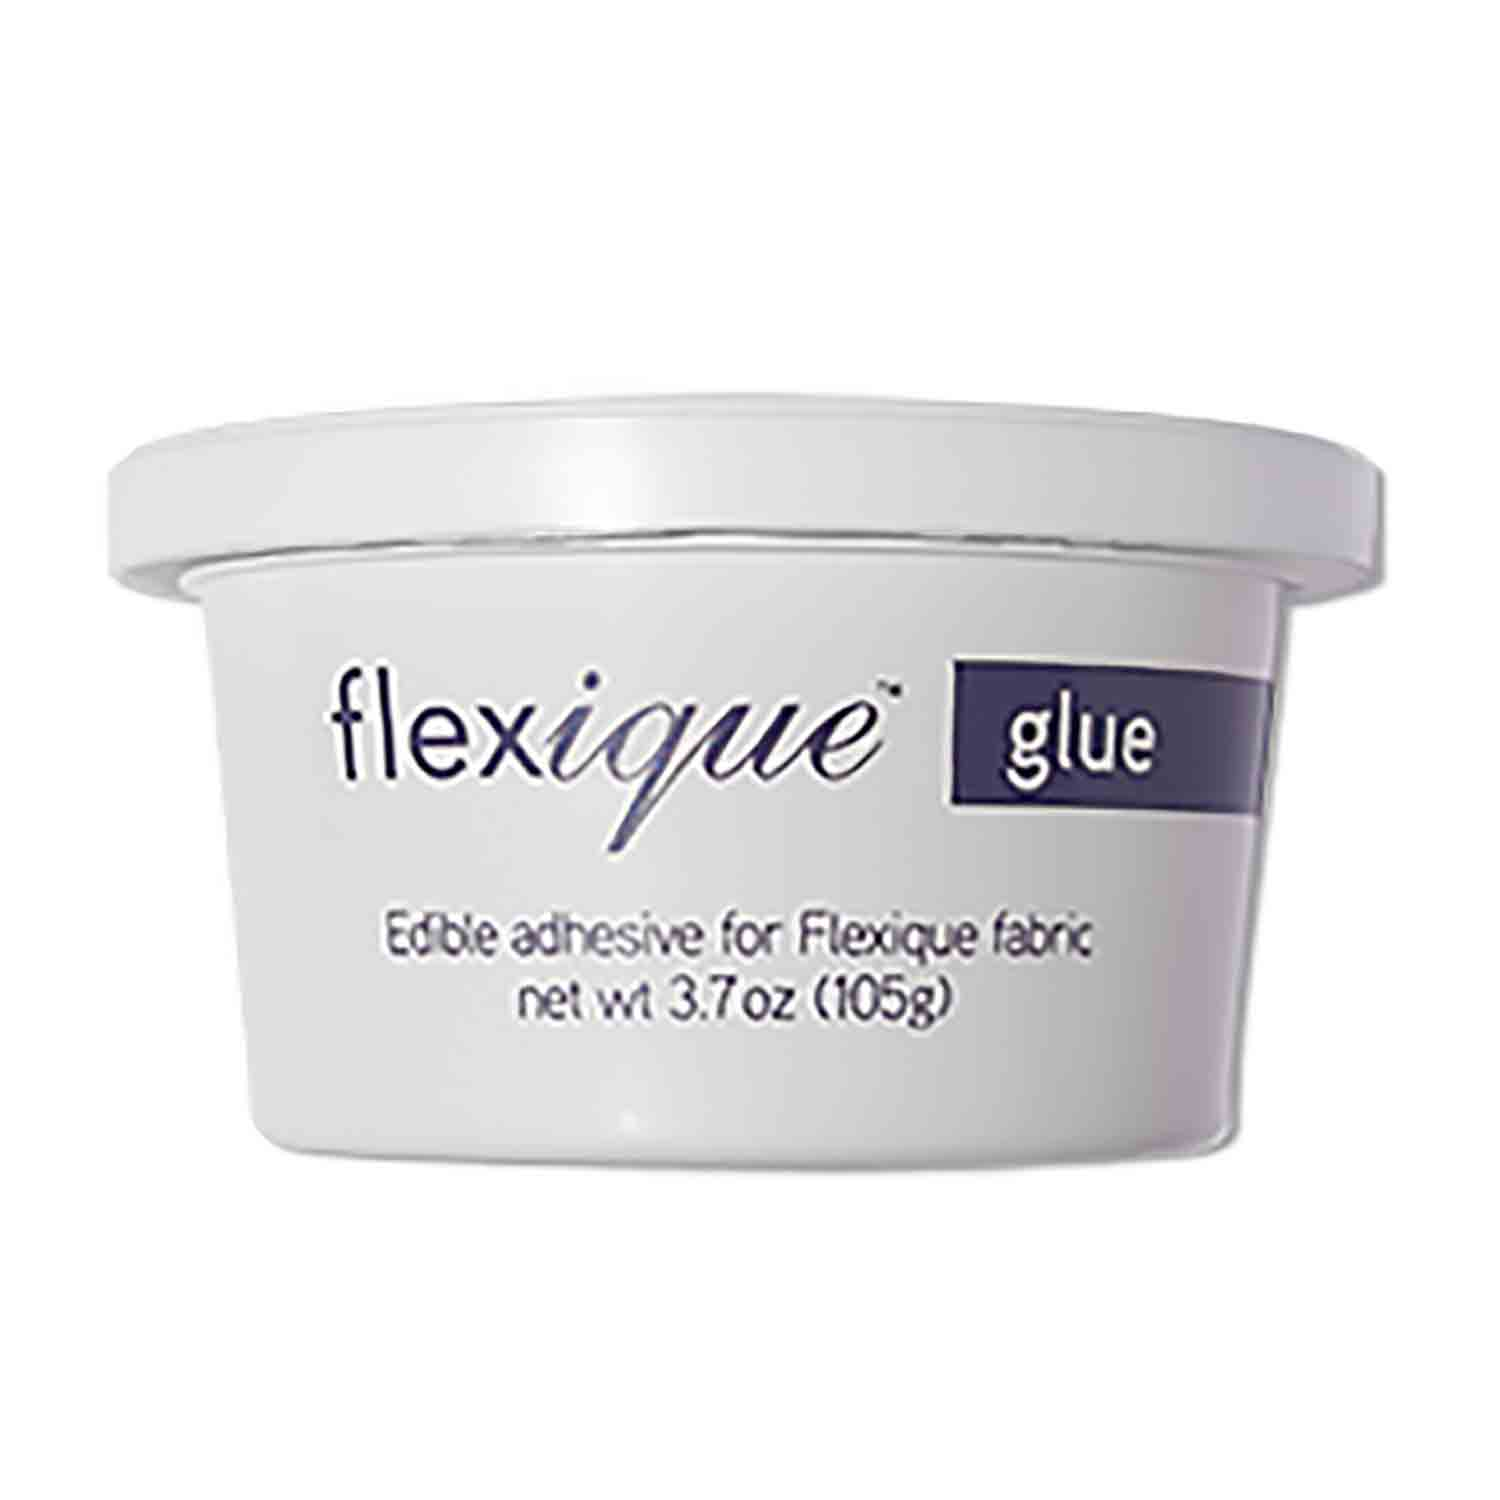 Edible Adhesive by Flexique